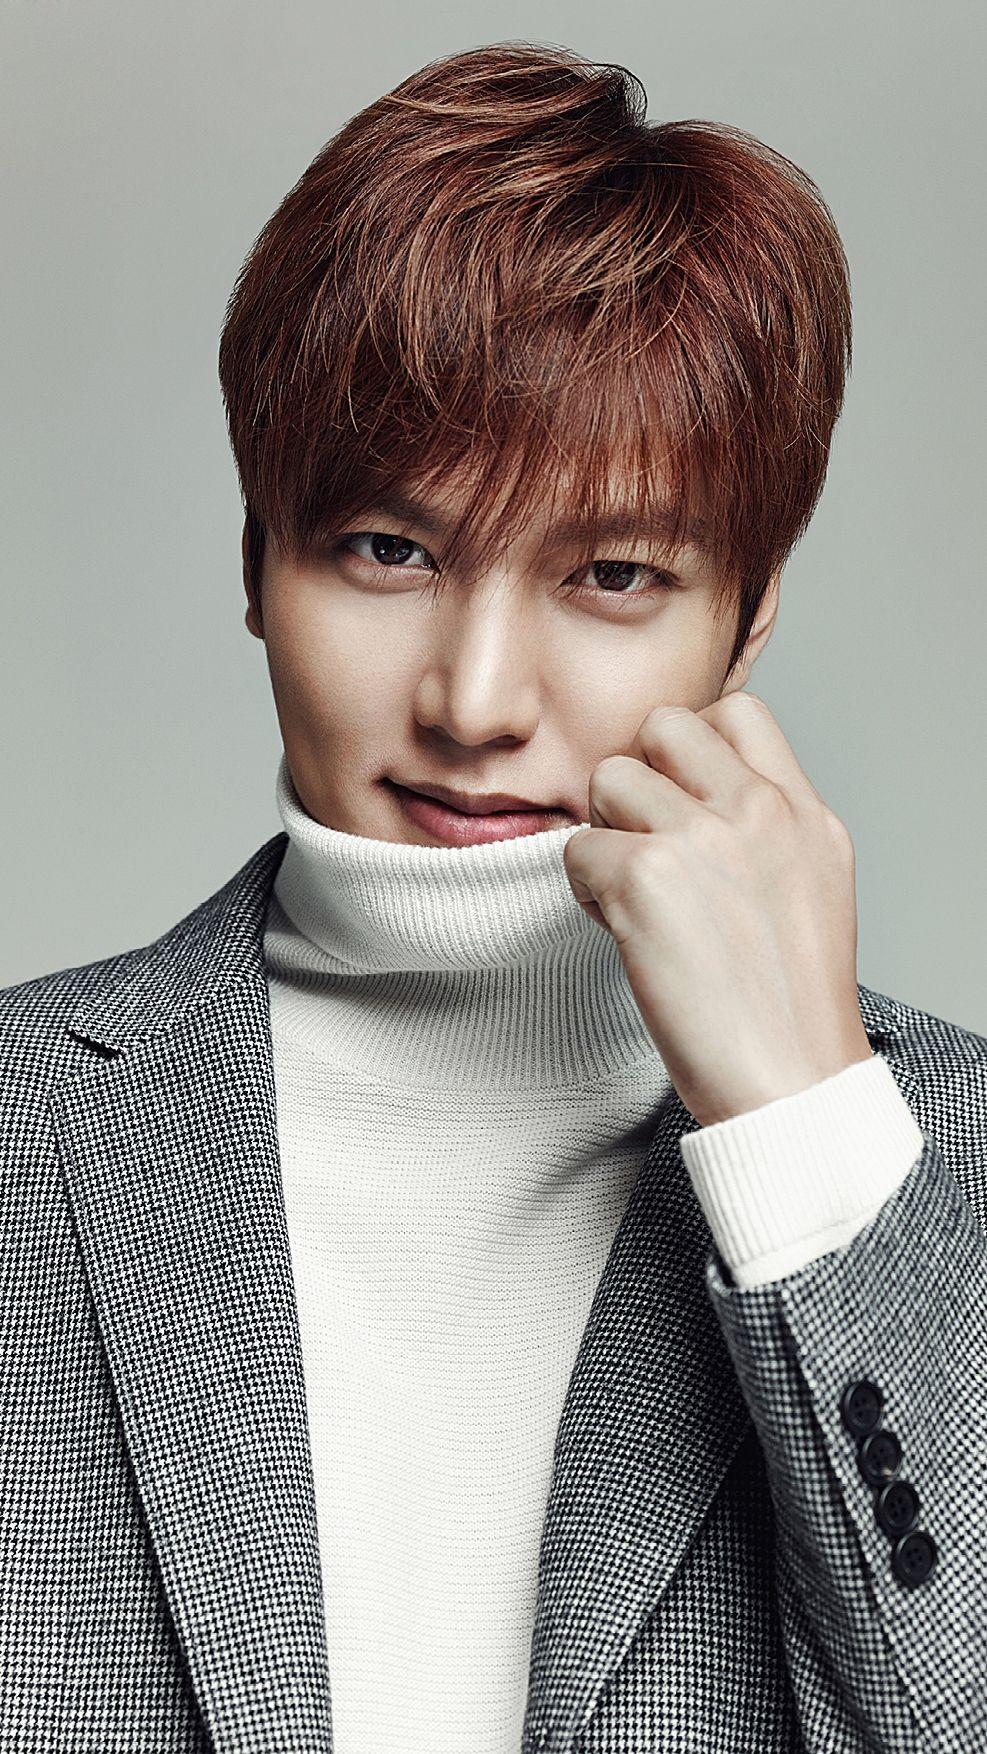 Up For Grabs: FREE Lee Min Ho Wallpapers - ILoveKStars